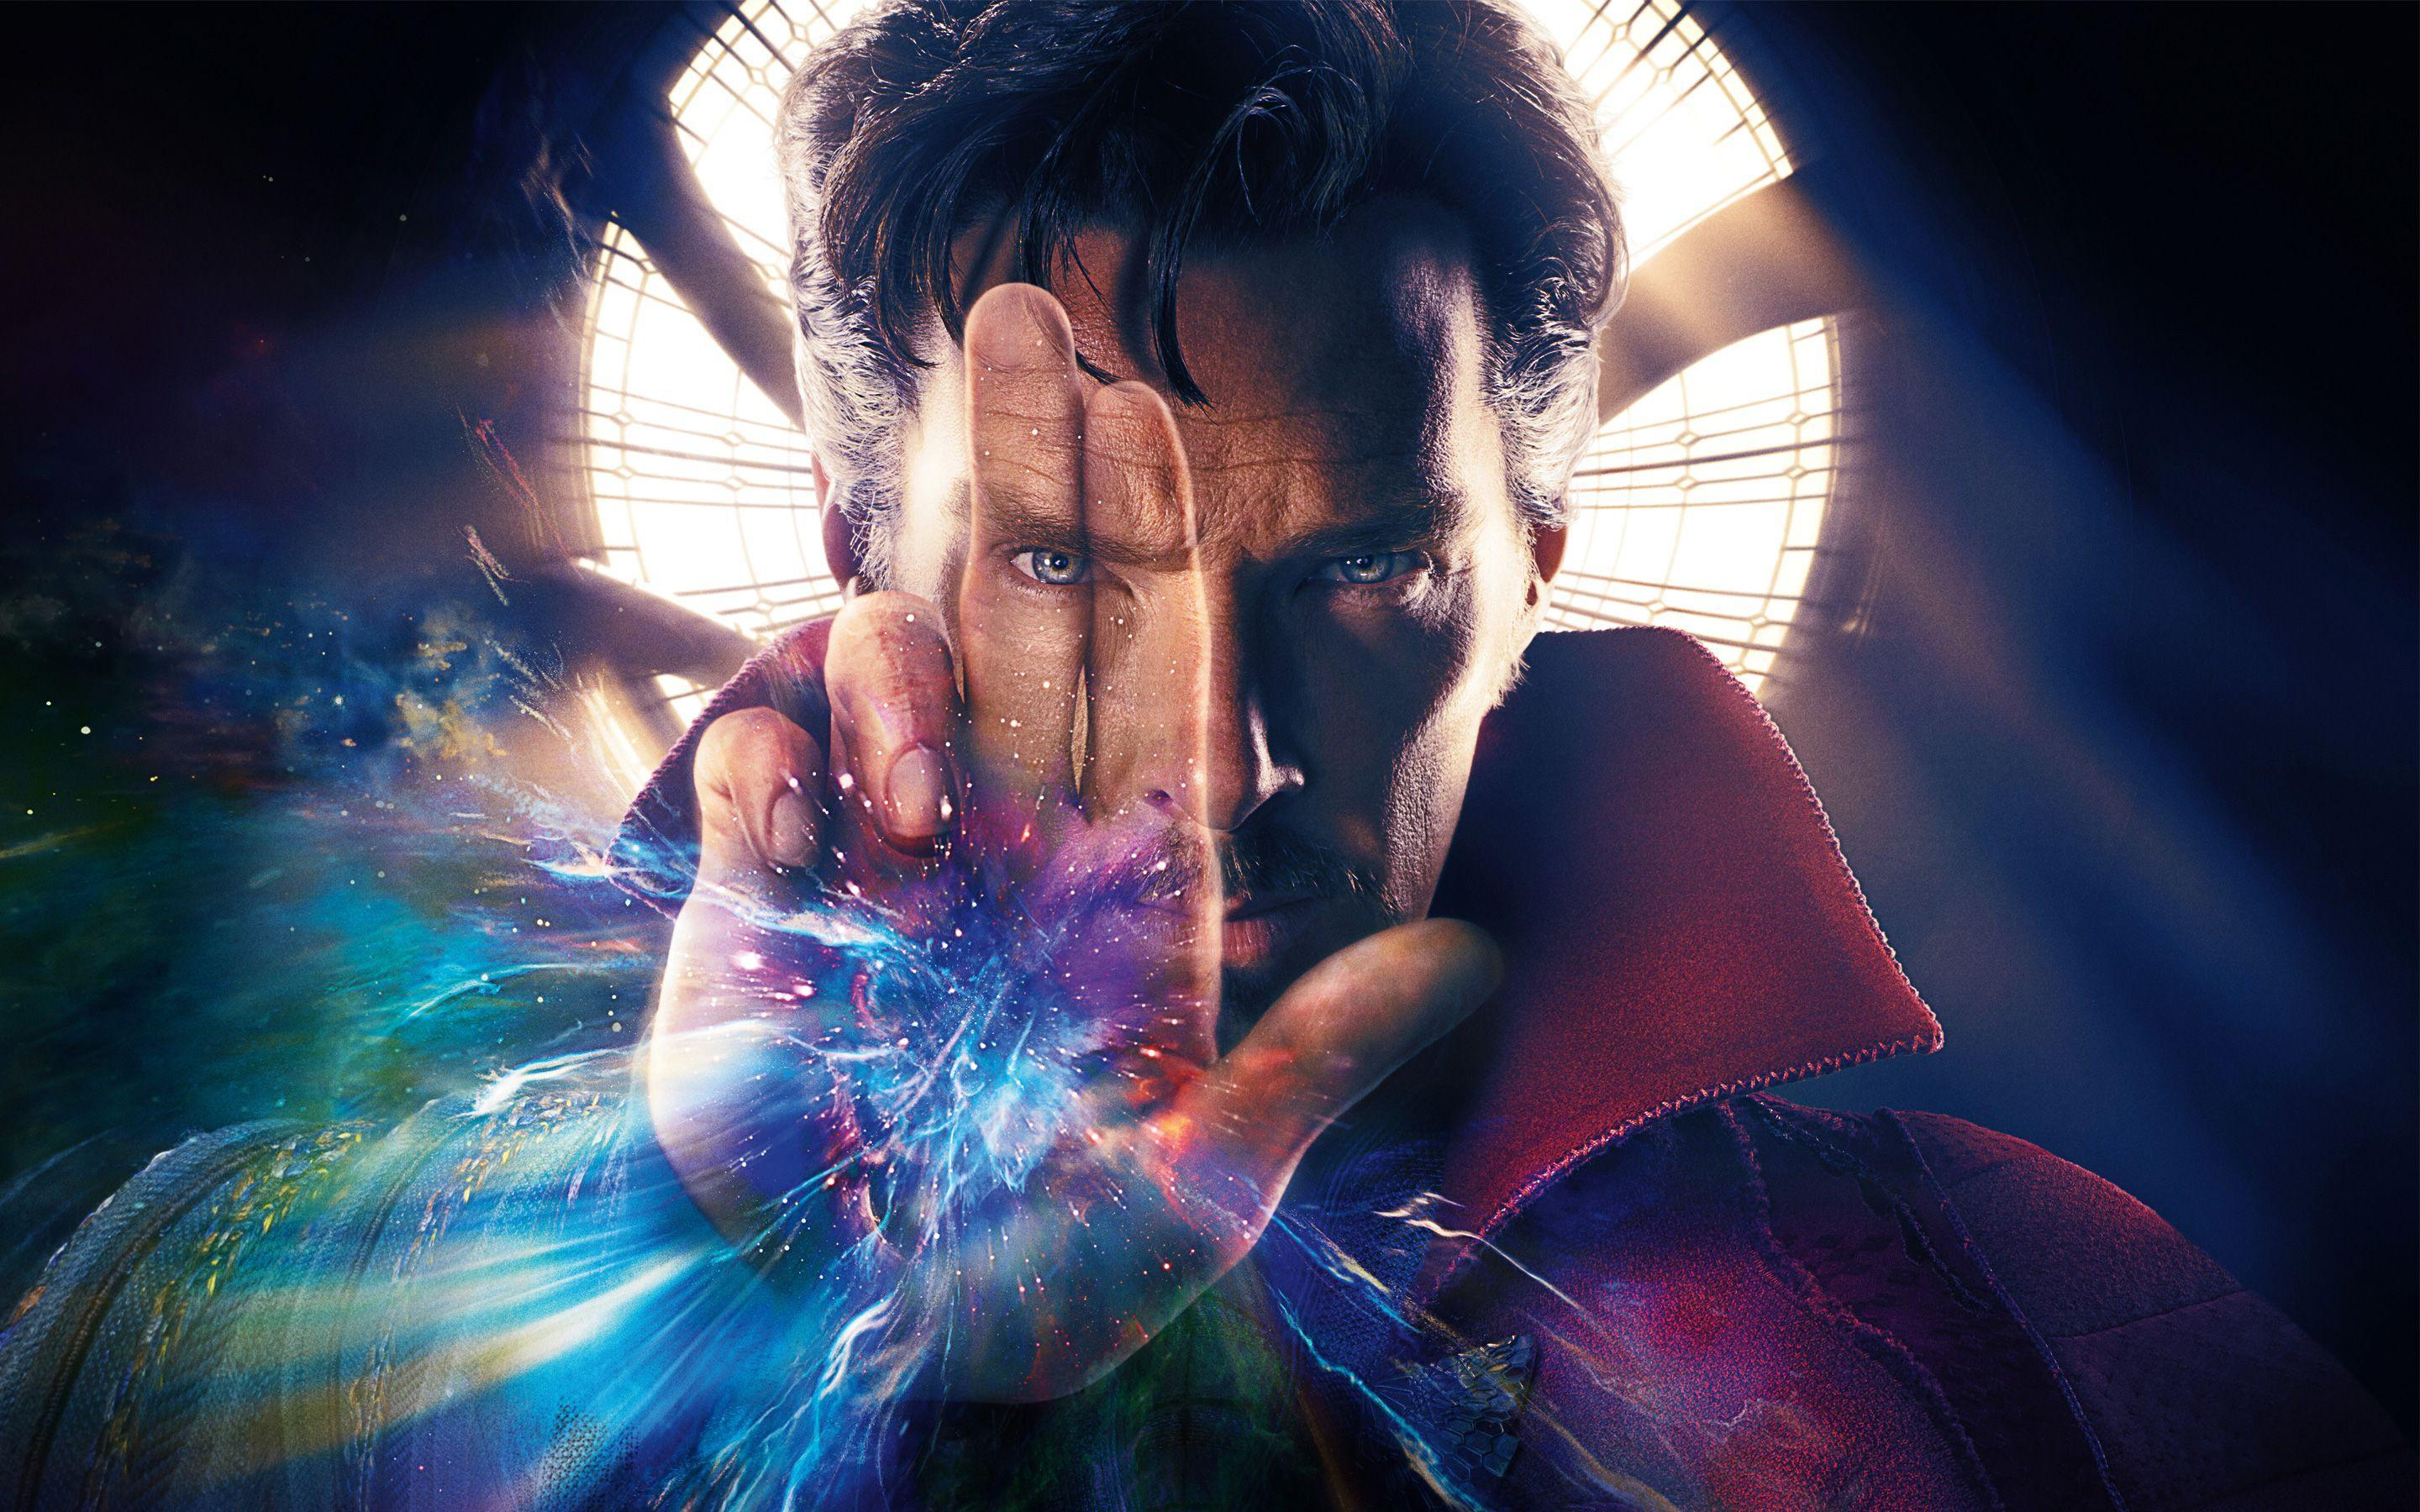 dr. strange wallpapers - wallpaper cave